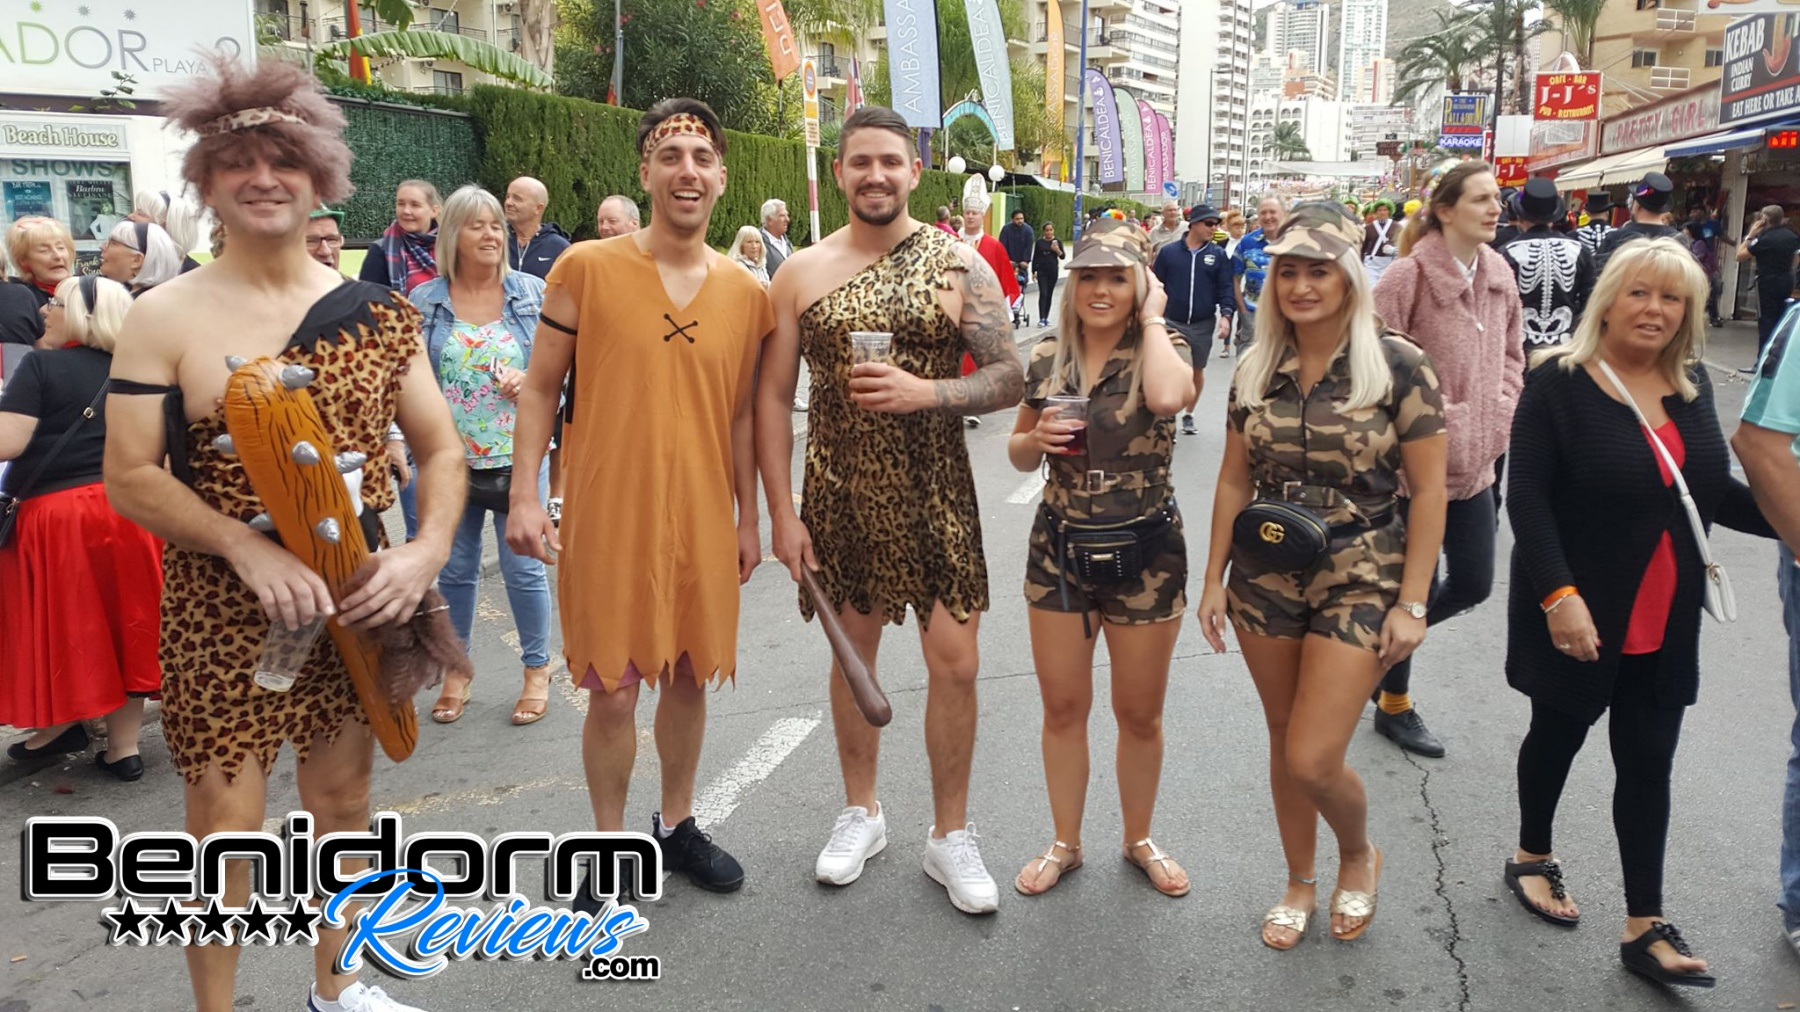 Benidorm-Fiestas-2019-Fancy-Dress-11